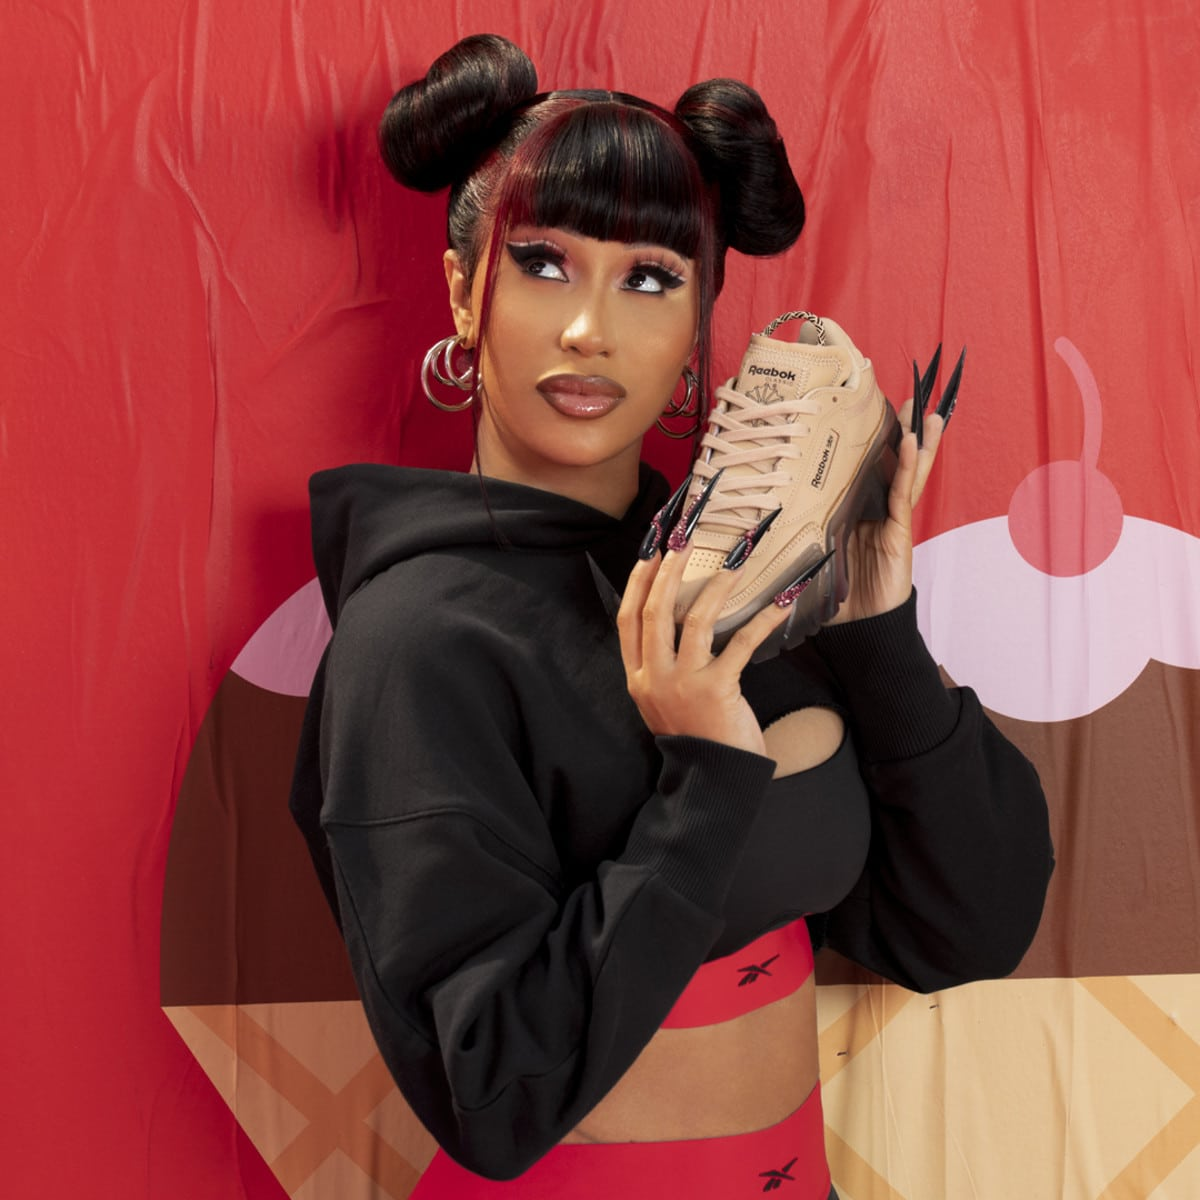 Cardi B partners with Reebok for a '90s-inspired athleisurewear collection 21